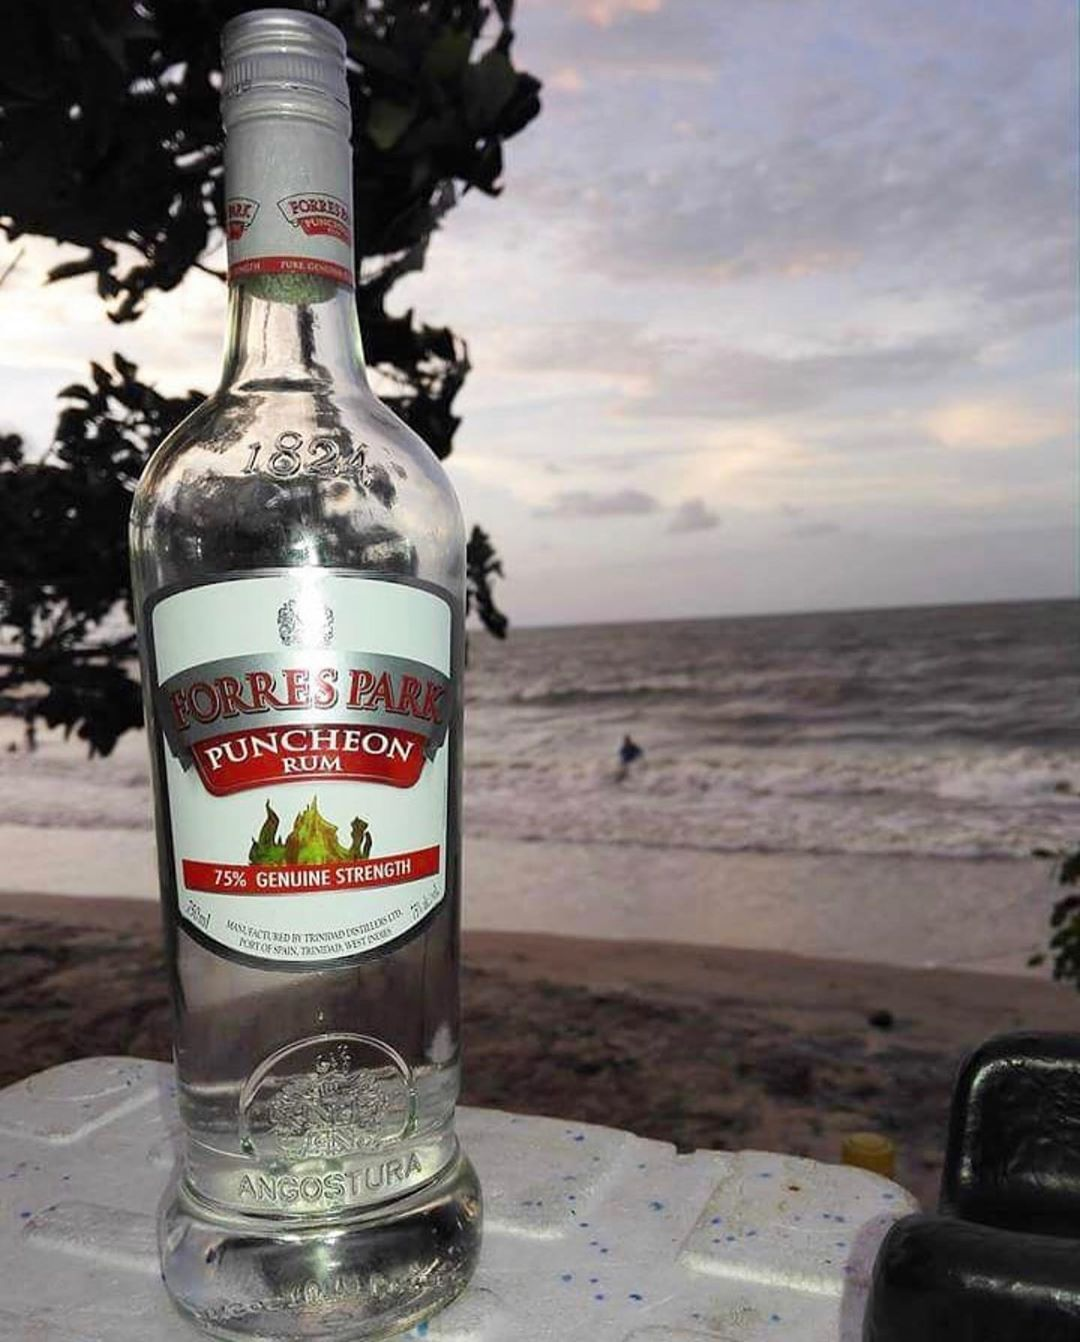 Forres Park Puncheon Rum Forrespark Instagram Analytics By Analisa Io